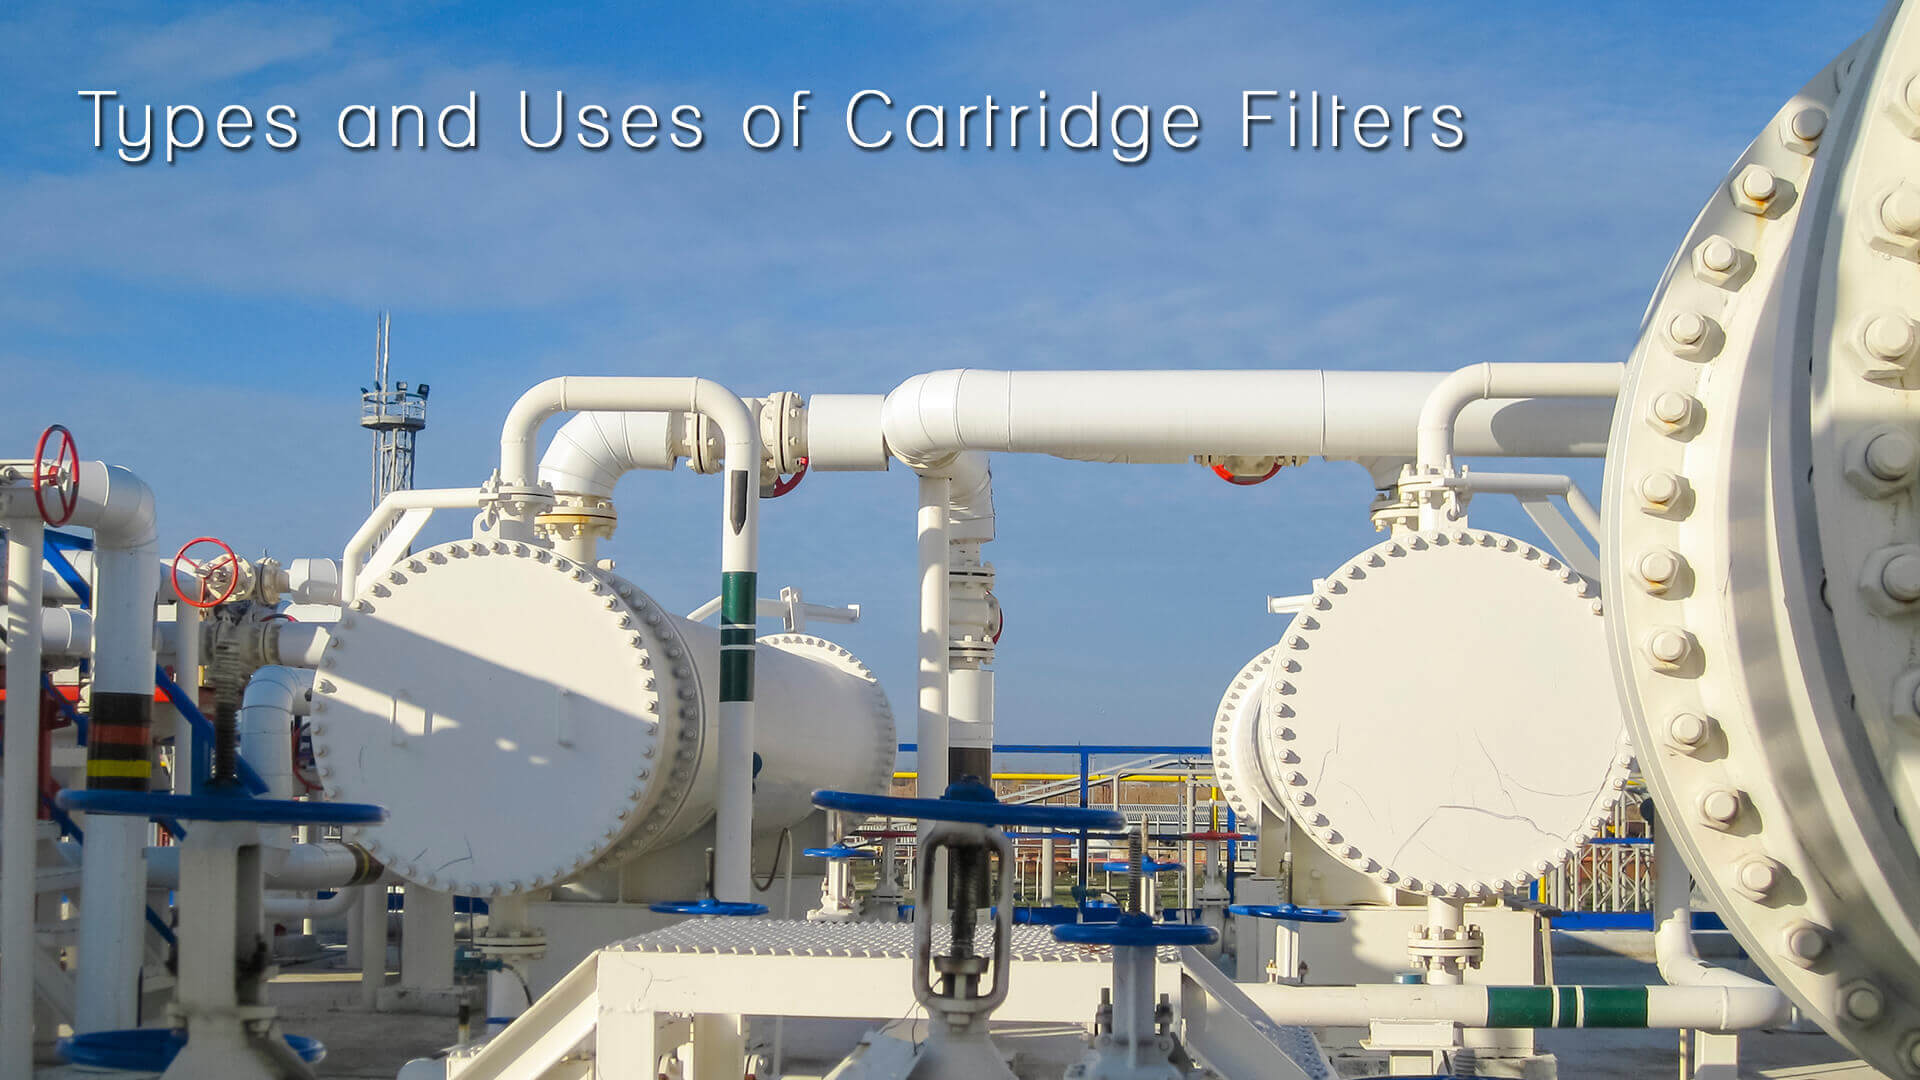 Types and Uses of Cartridge Filters